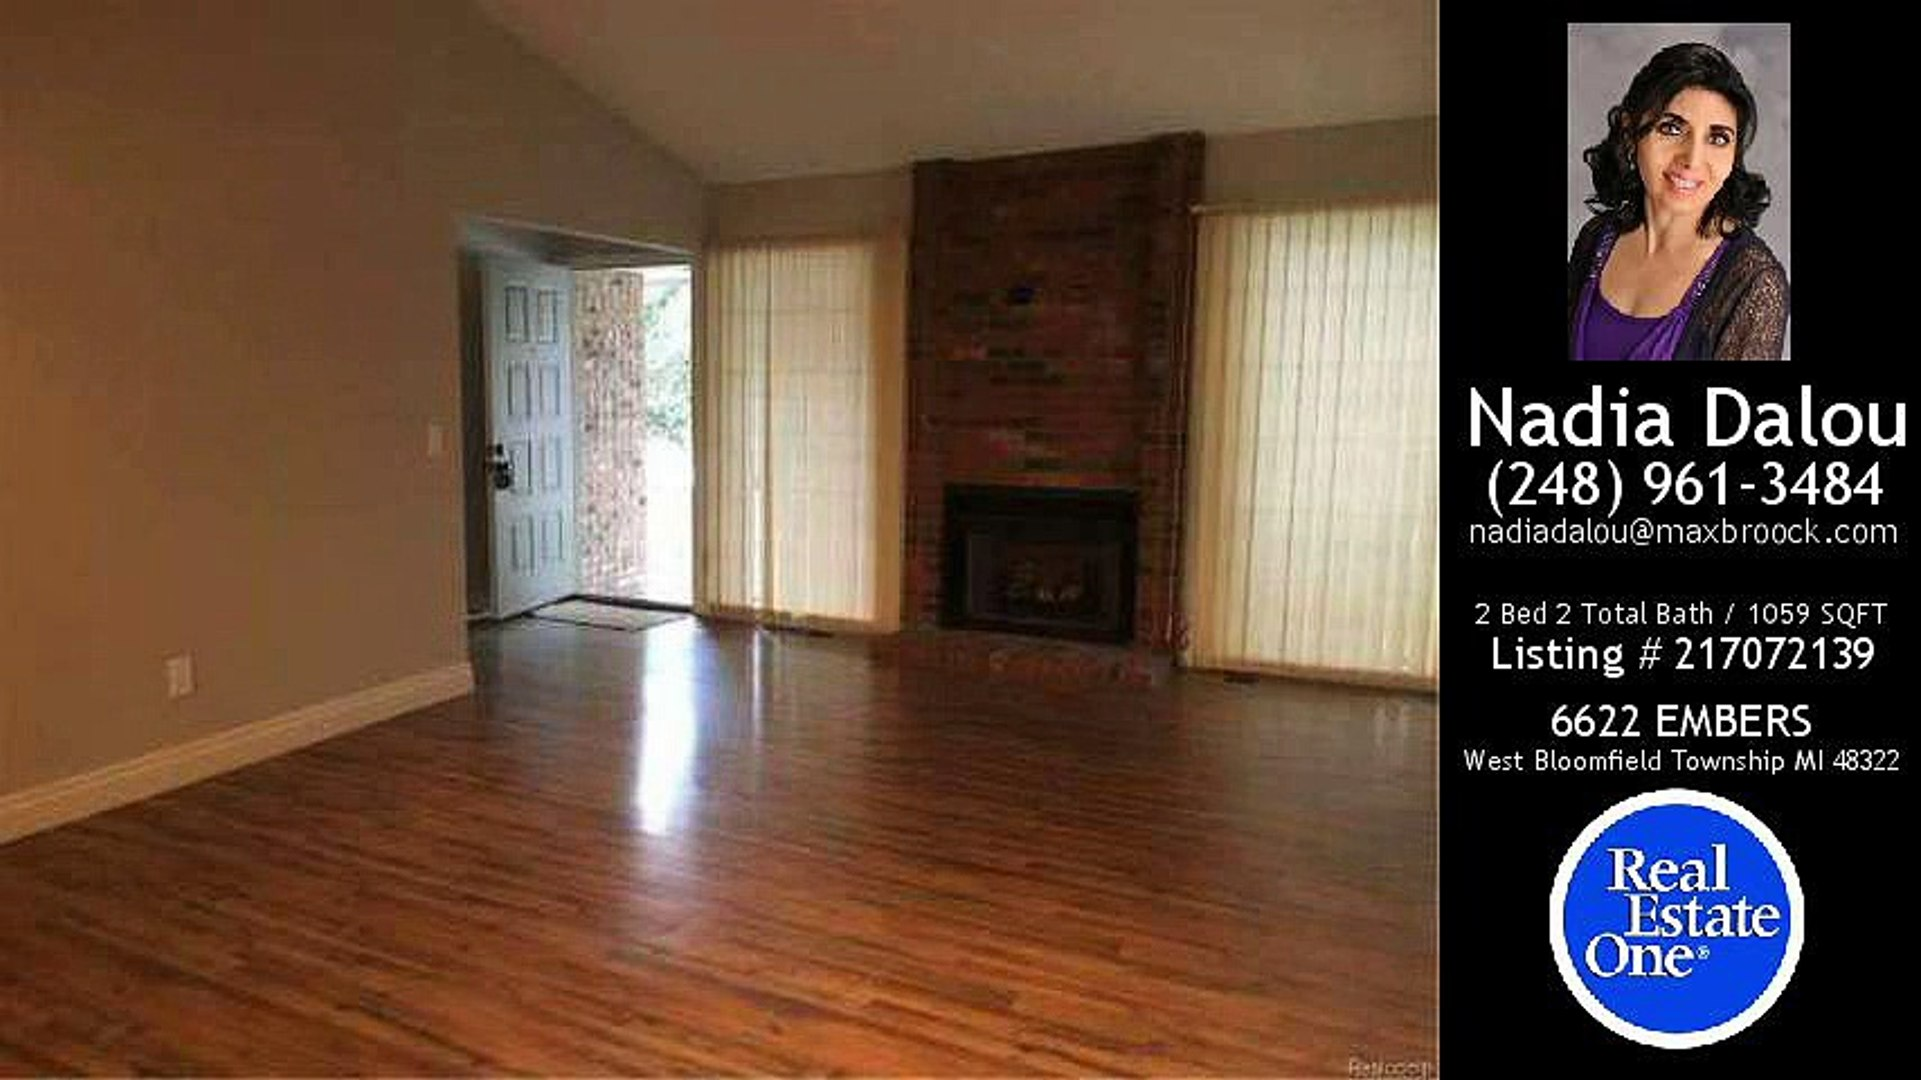 6622 EMBERS, West Bloomfield Township, MI - $1,700